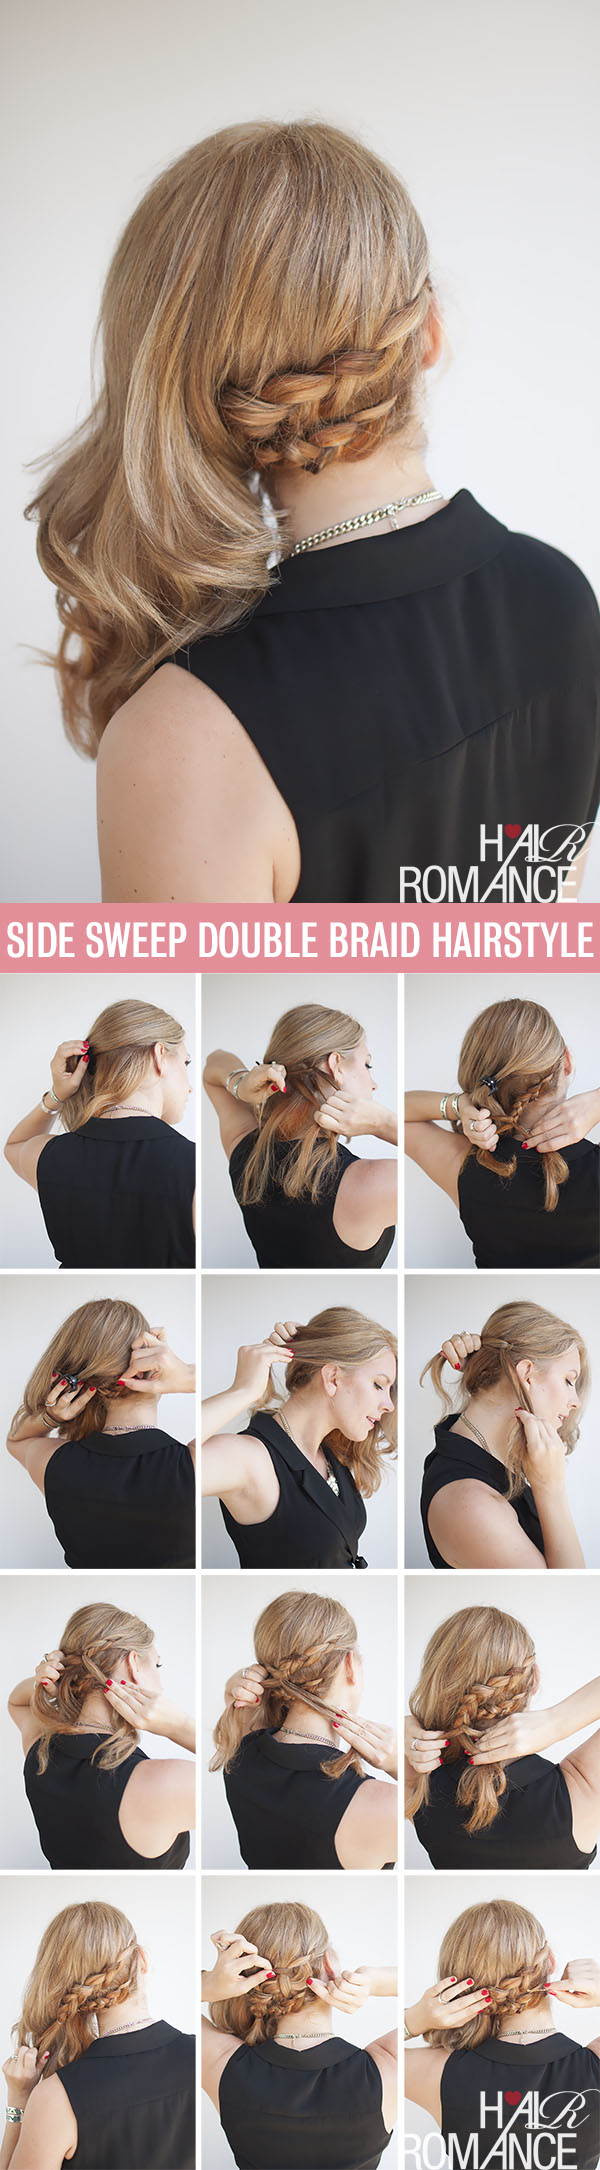 Hair Romance hairstyle tutorial - double braid side sweep hairstyle